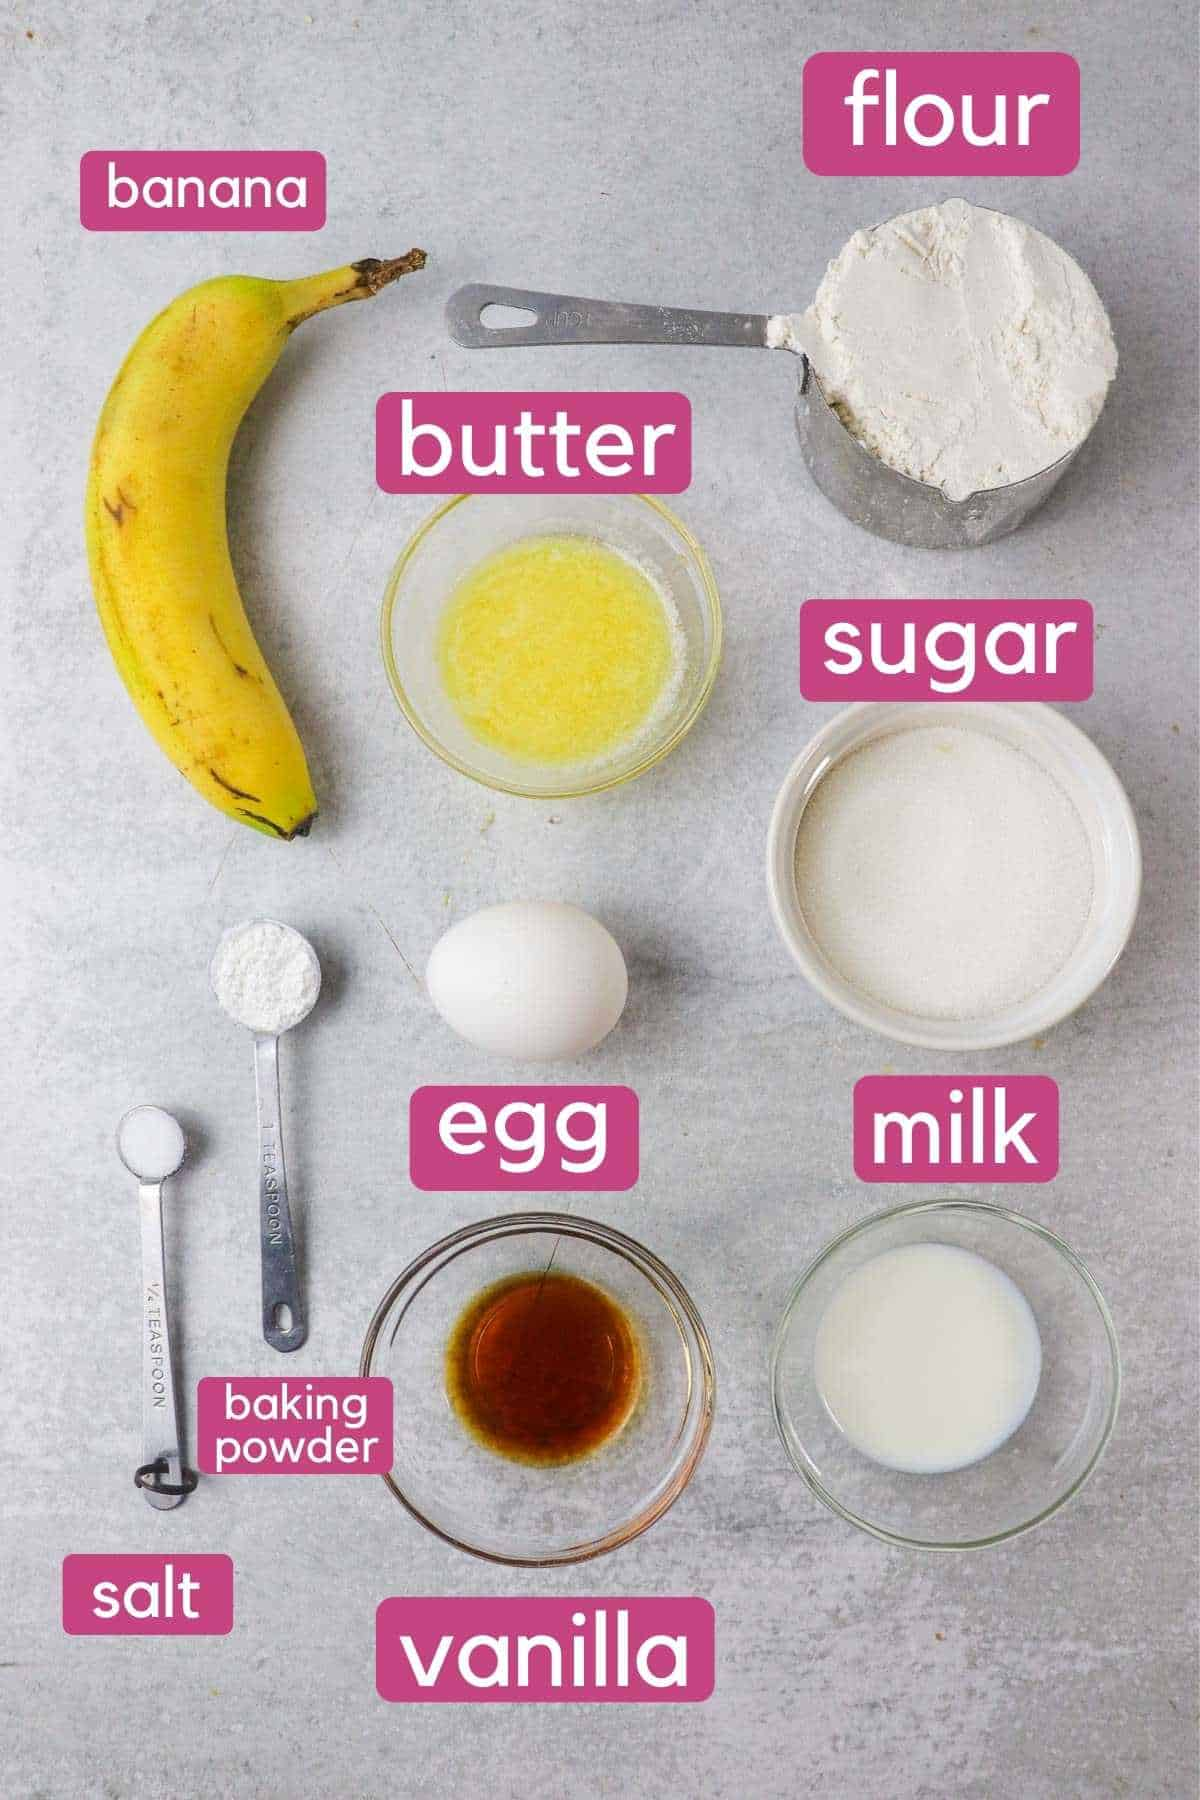 Ingredients for Banana Baked Donuts.